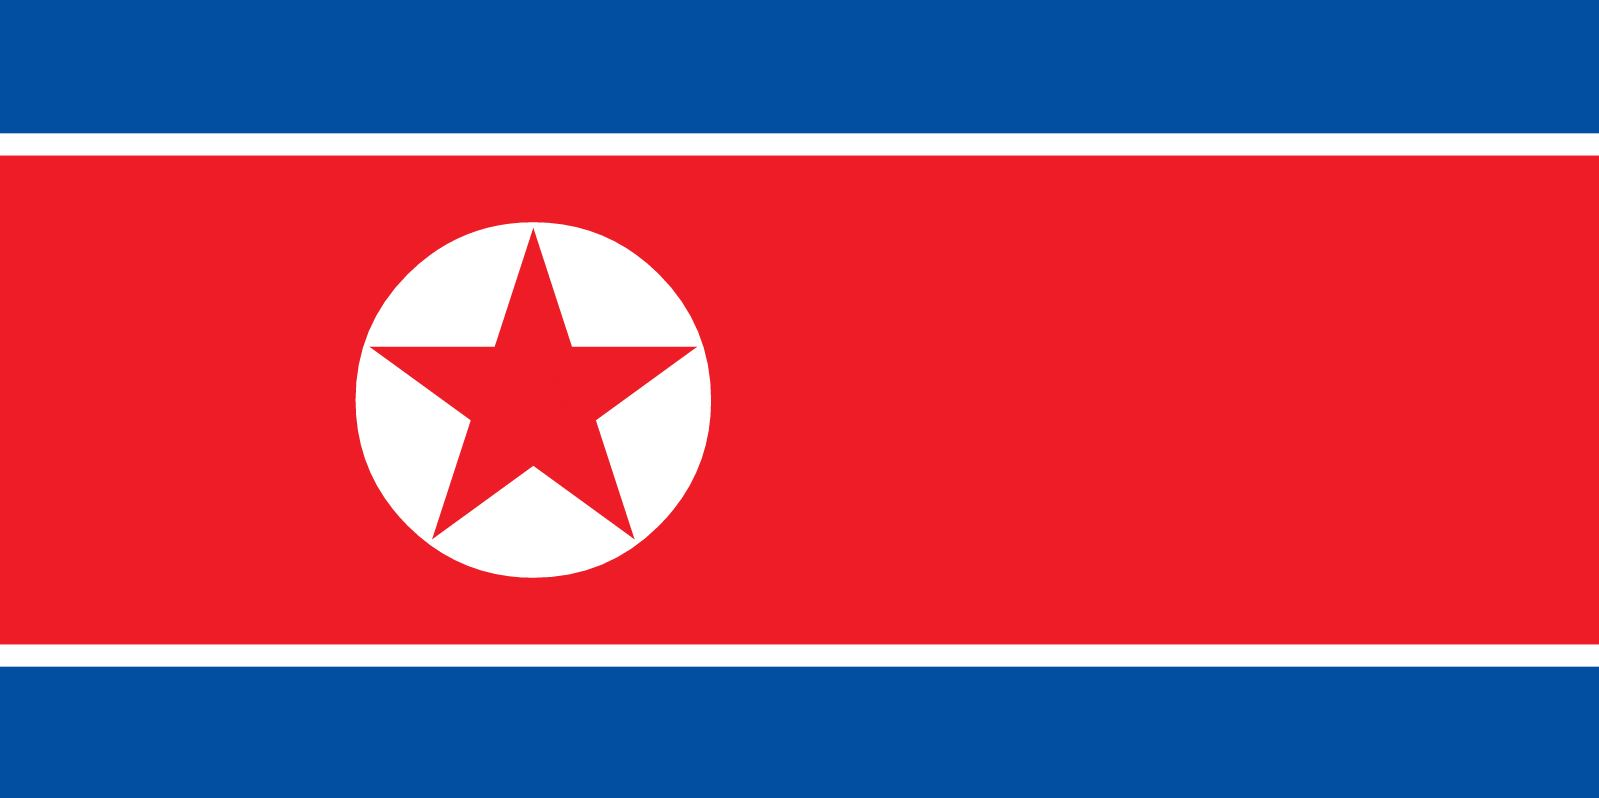 North Korea's internet is down in wake of Sony hack accusations